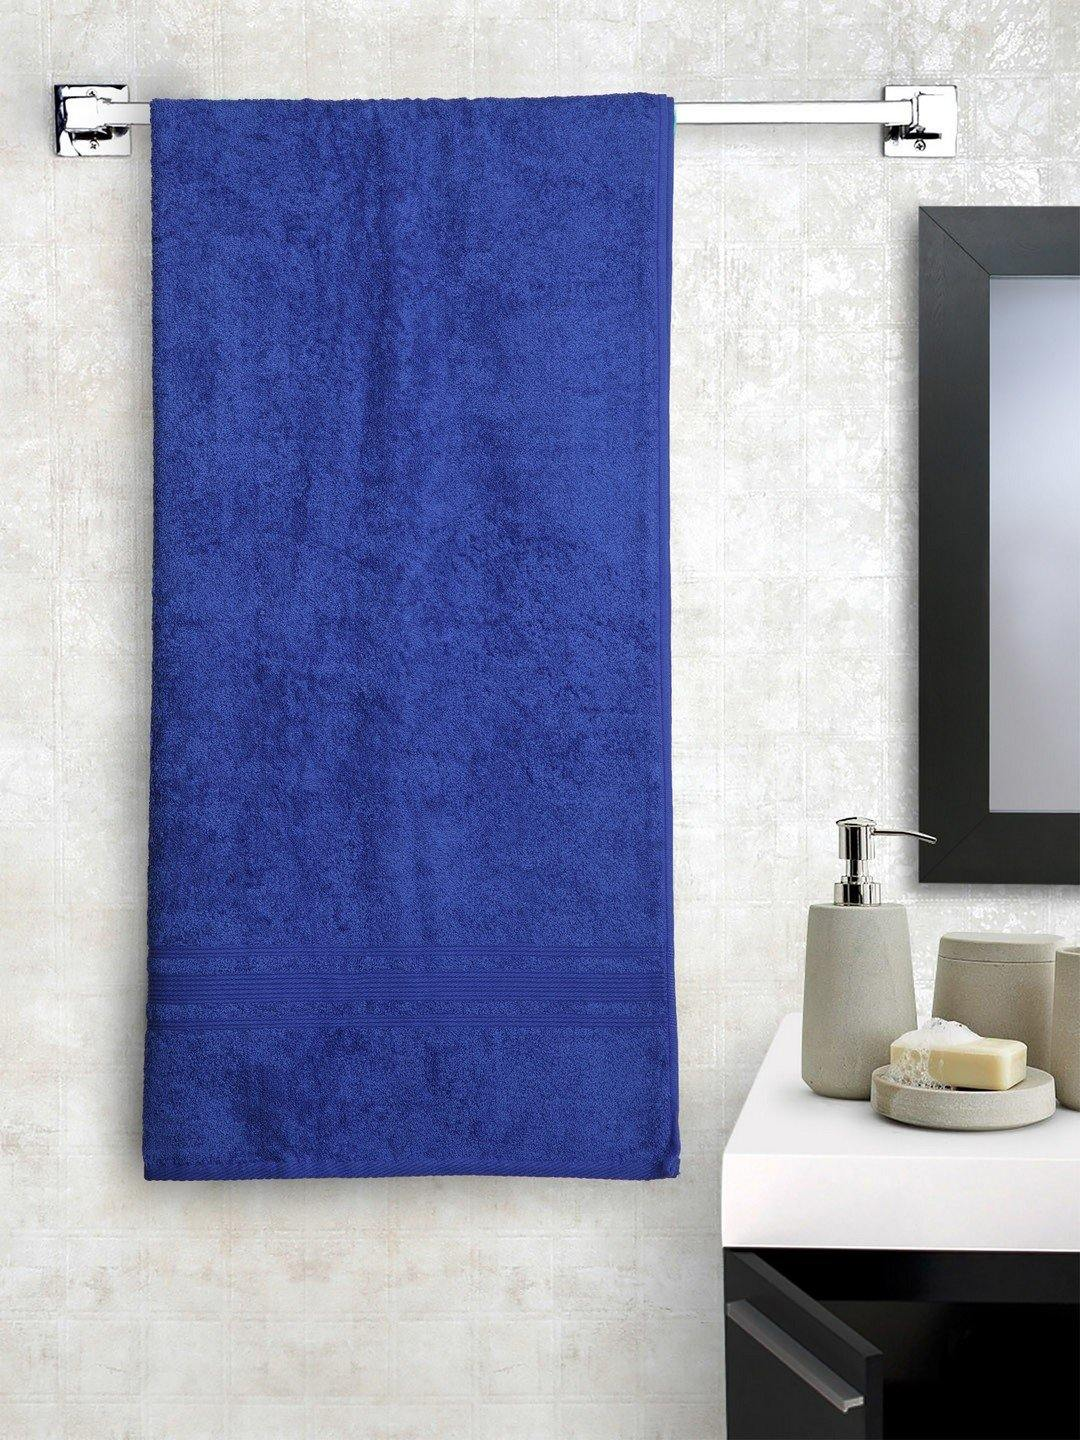 "Lushomes Nautical Blue Super soft and fluffy Cotton Turkish Bath towel (Size 35"" x 71""�, Single Pc, 450GSM) - Lushomes"